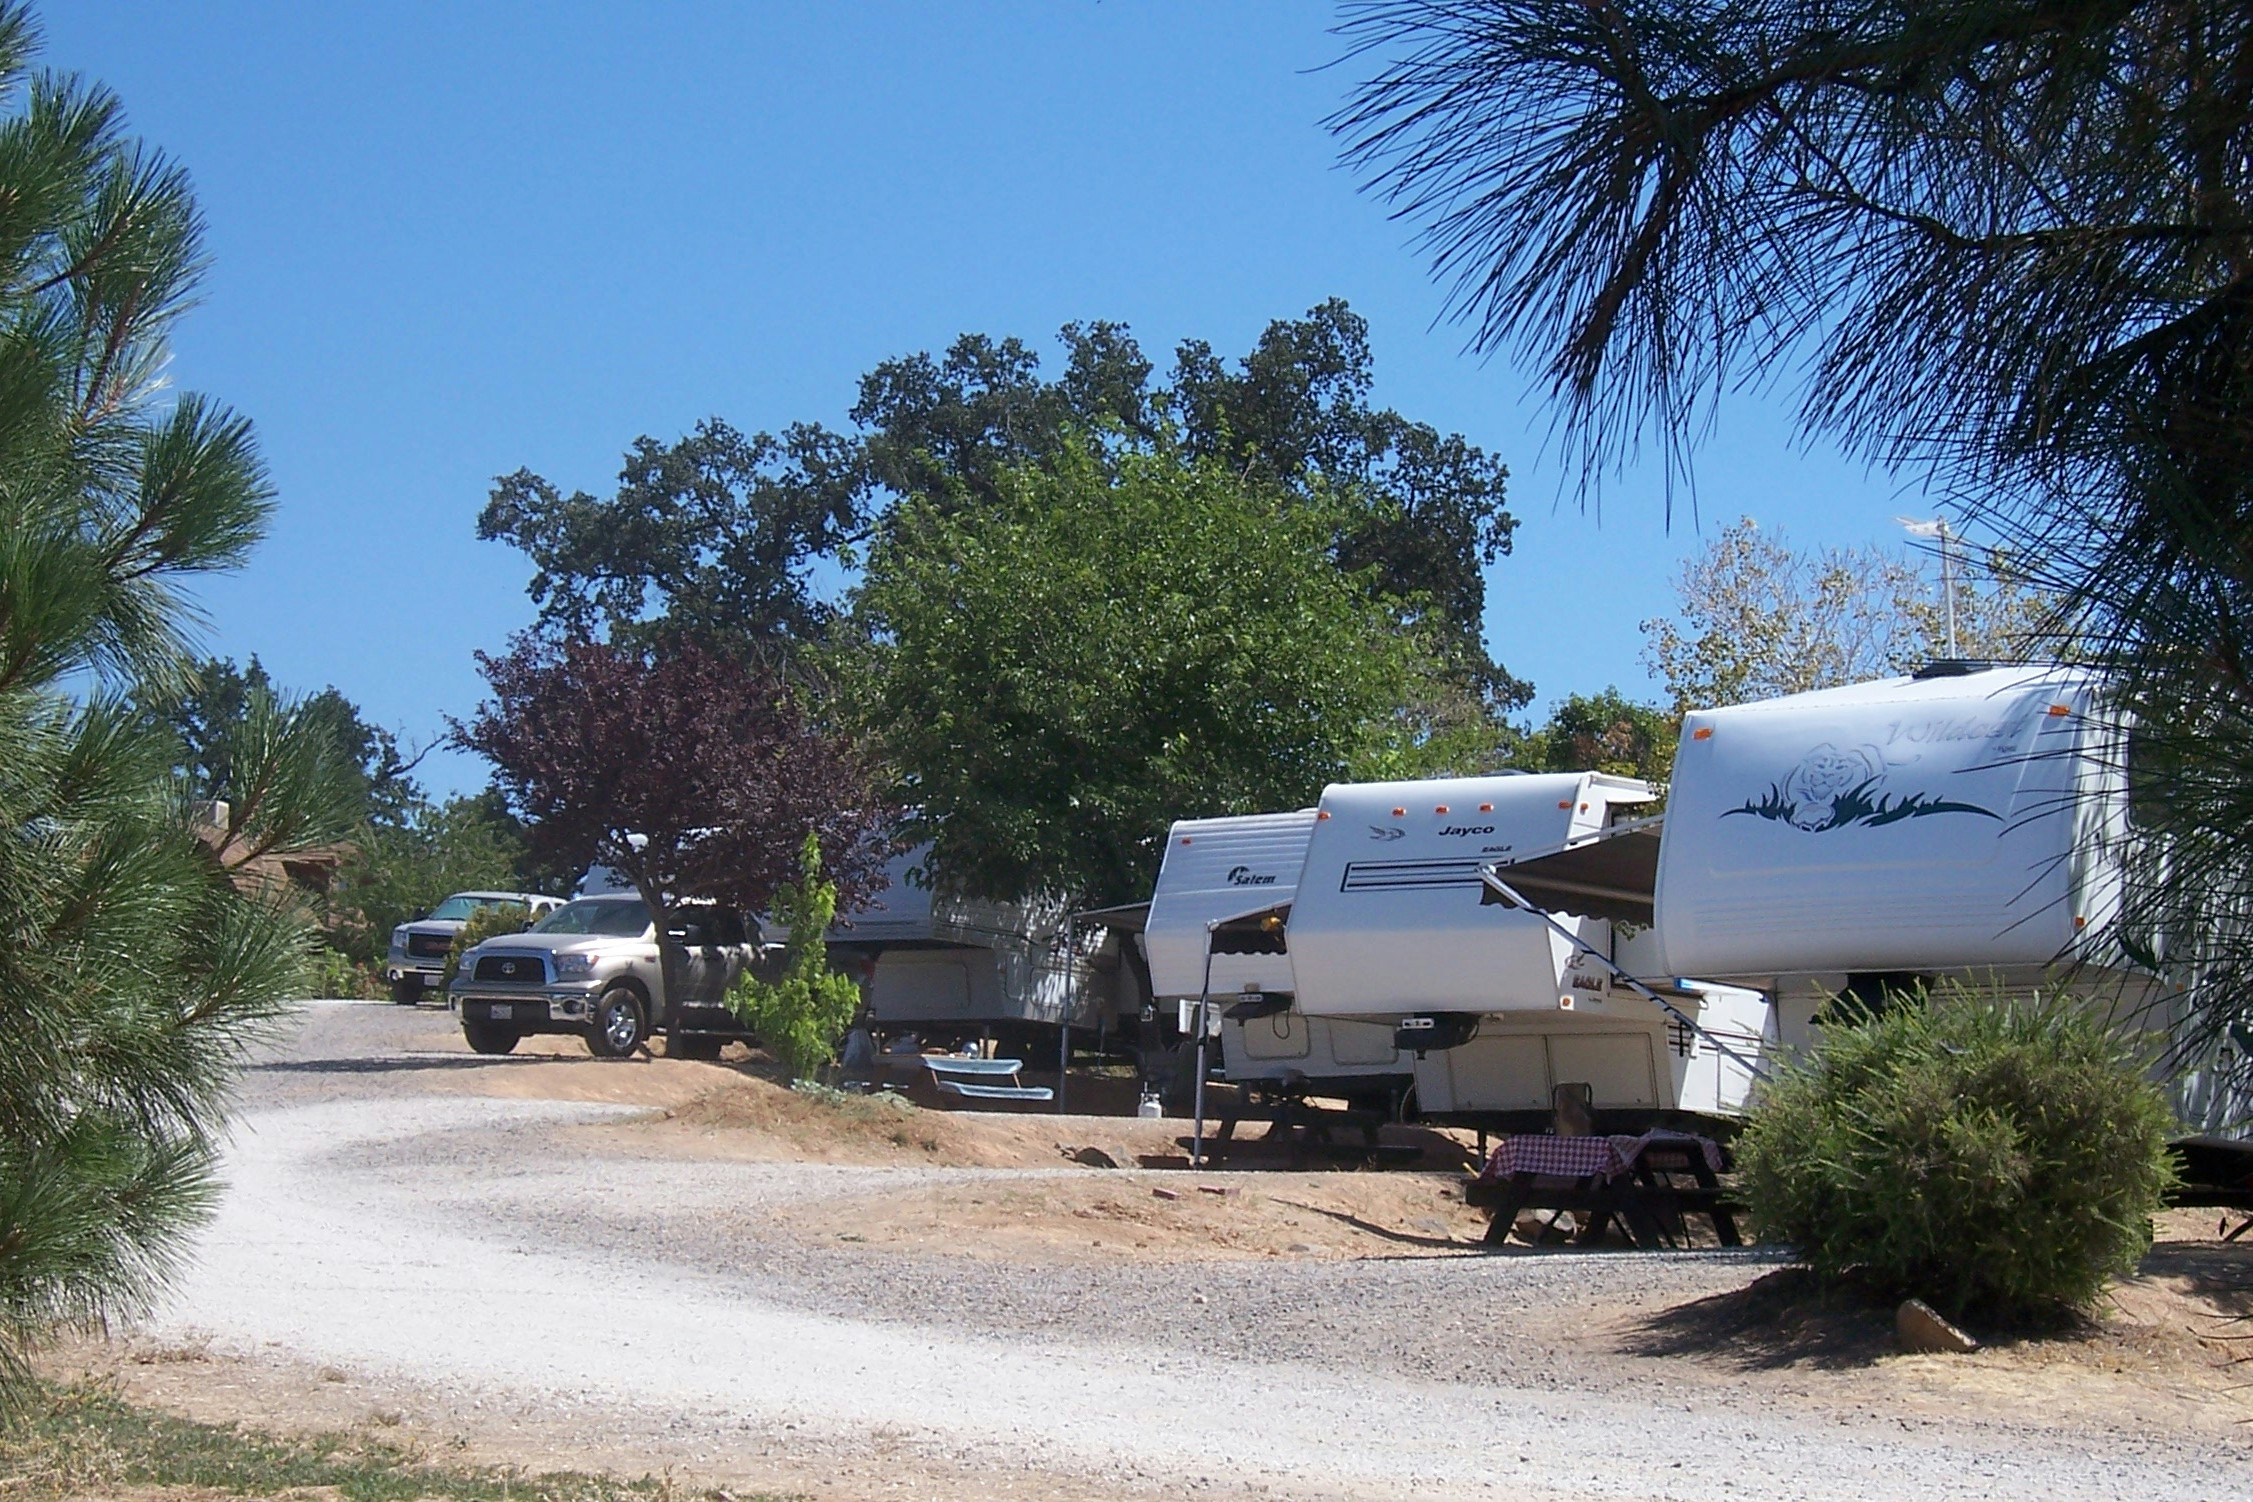 country meadows mobile home park with Photos on 26723062 additionally H66 This Is The Perfect Family Getaway  pletely Private On Its Own 8 8 Acres further Landscaping Designs For Ranch Style Homes together with District Of Columbia in addition 28094854.